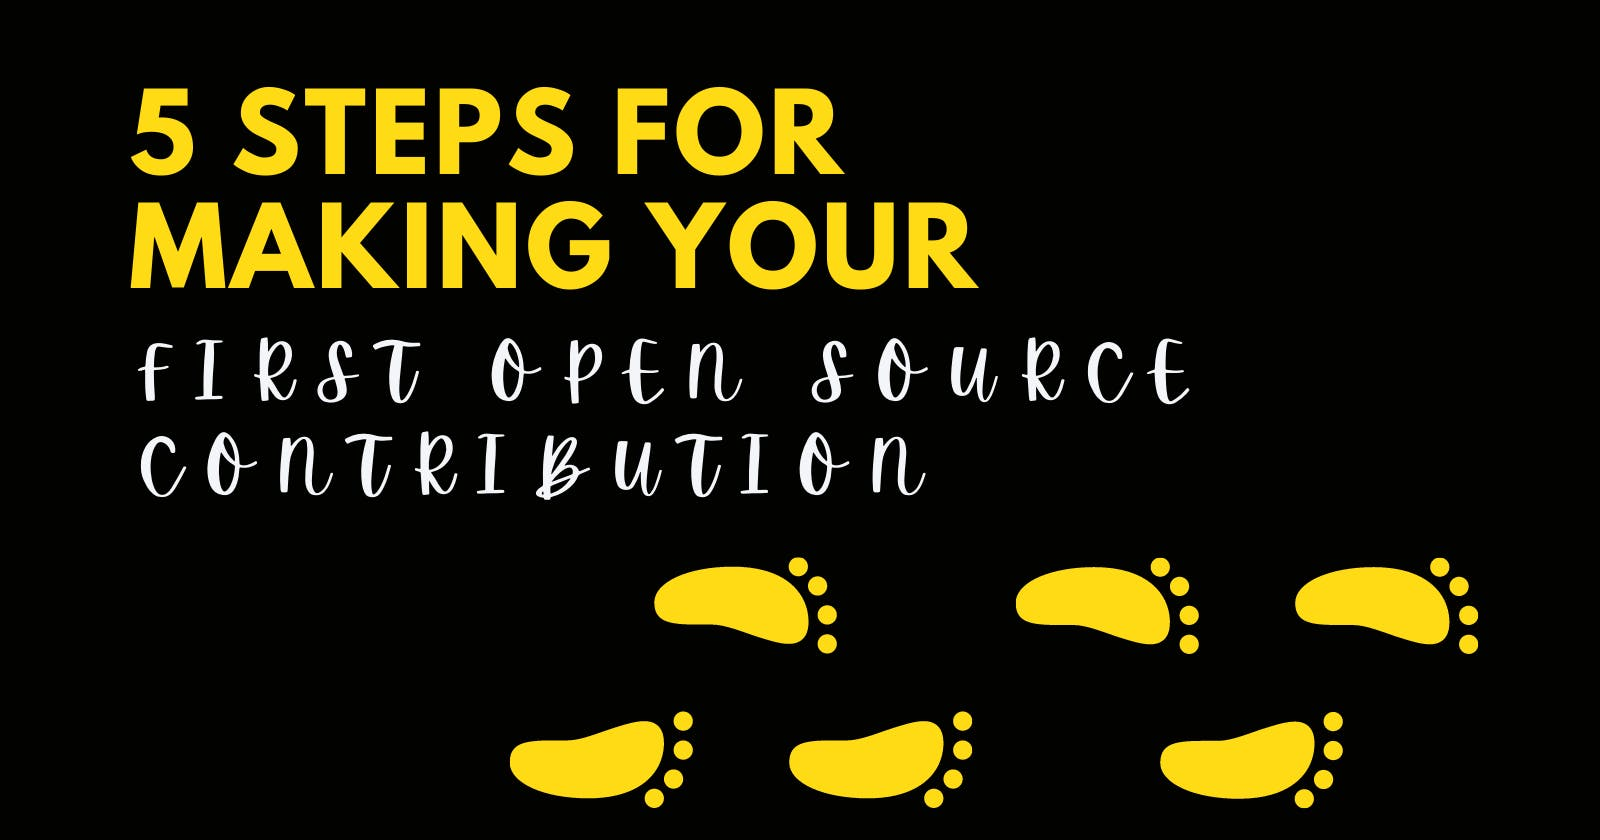 5 steps for Making Your First Open Source Contribution